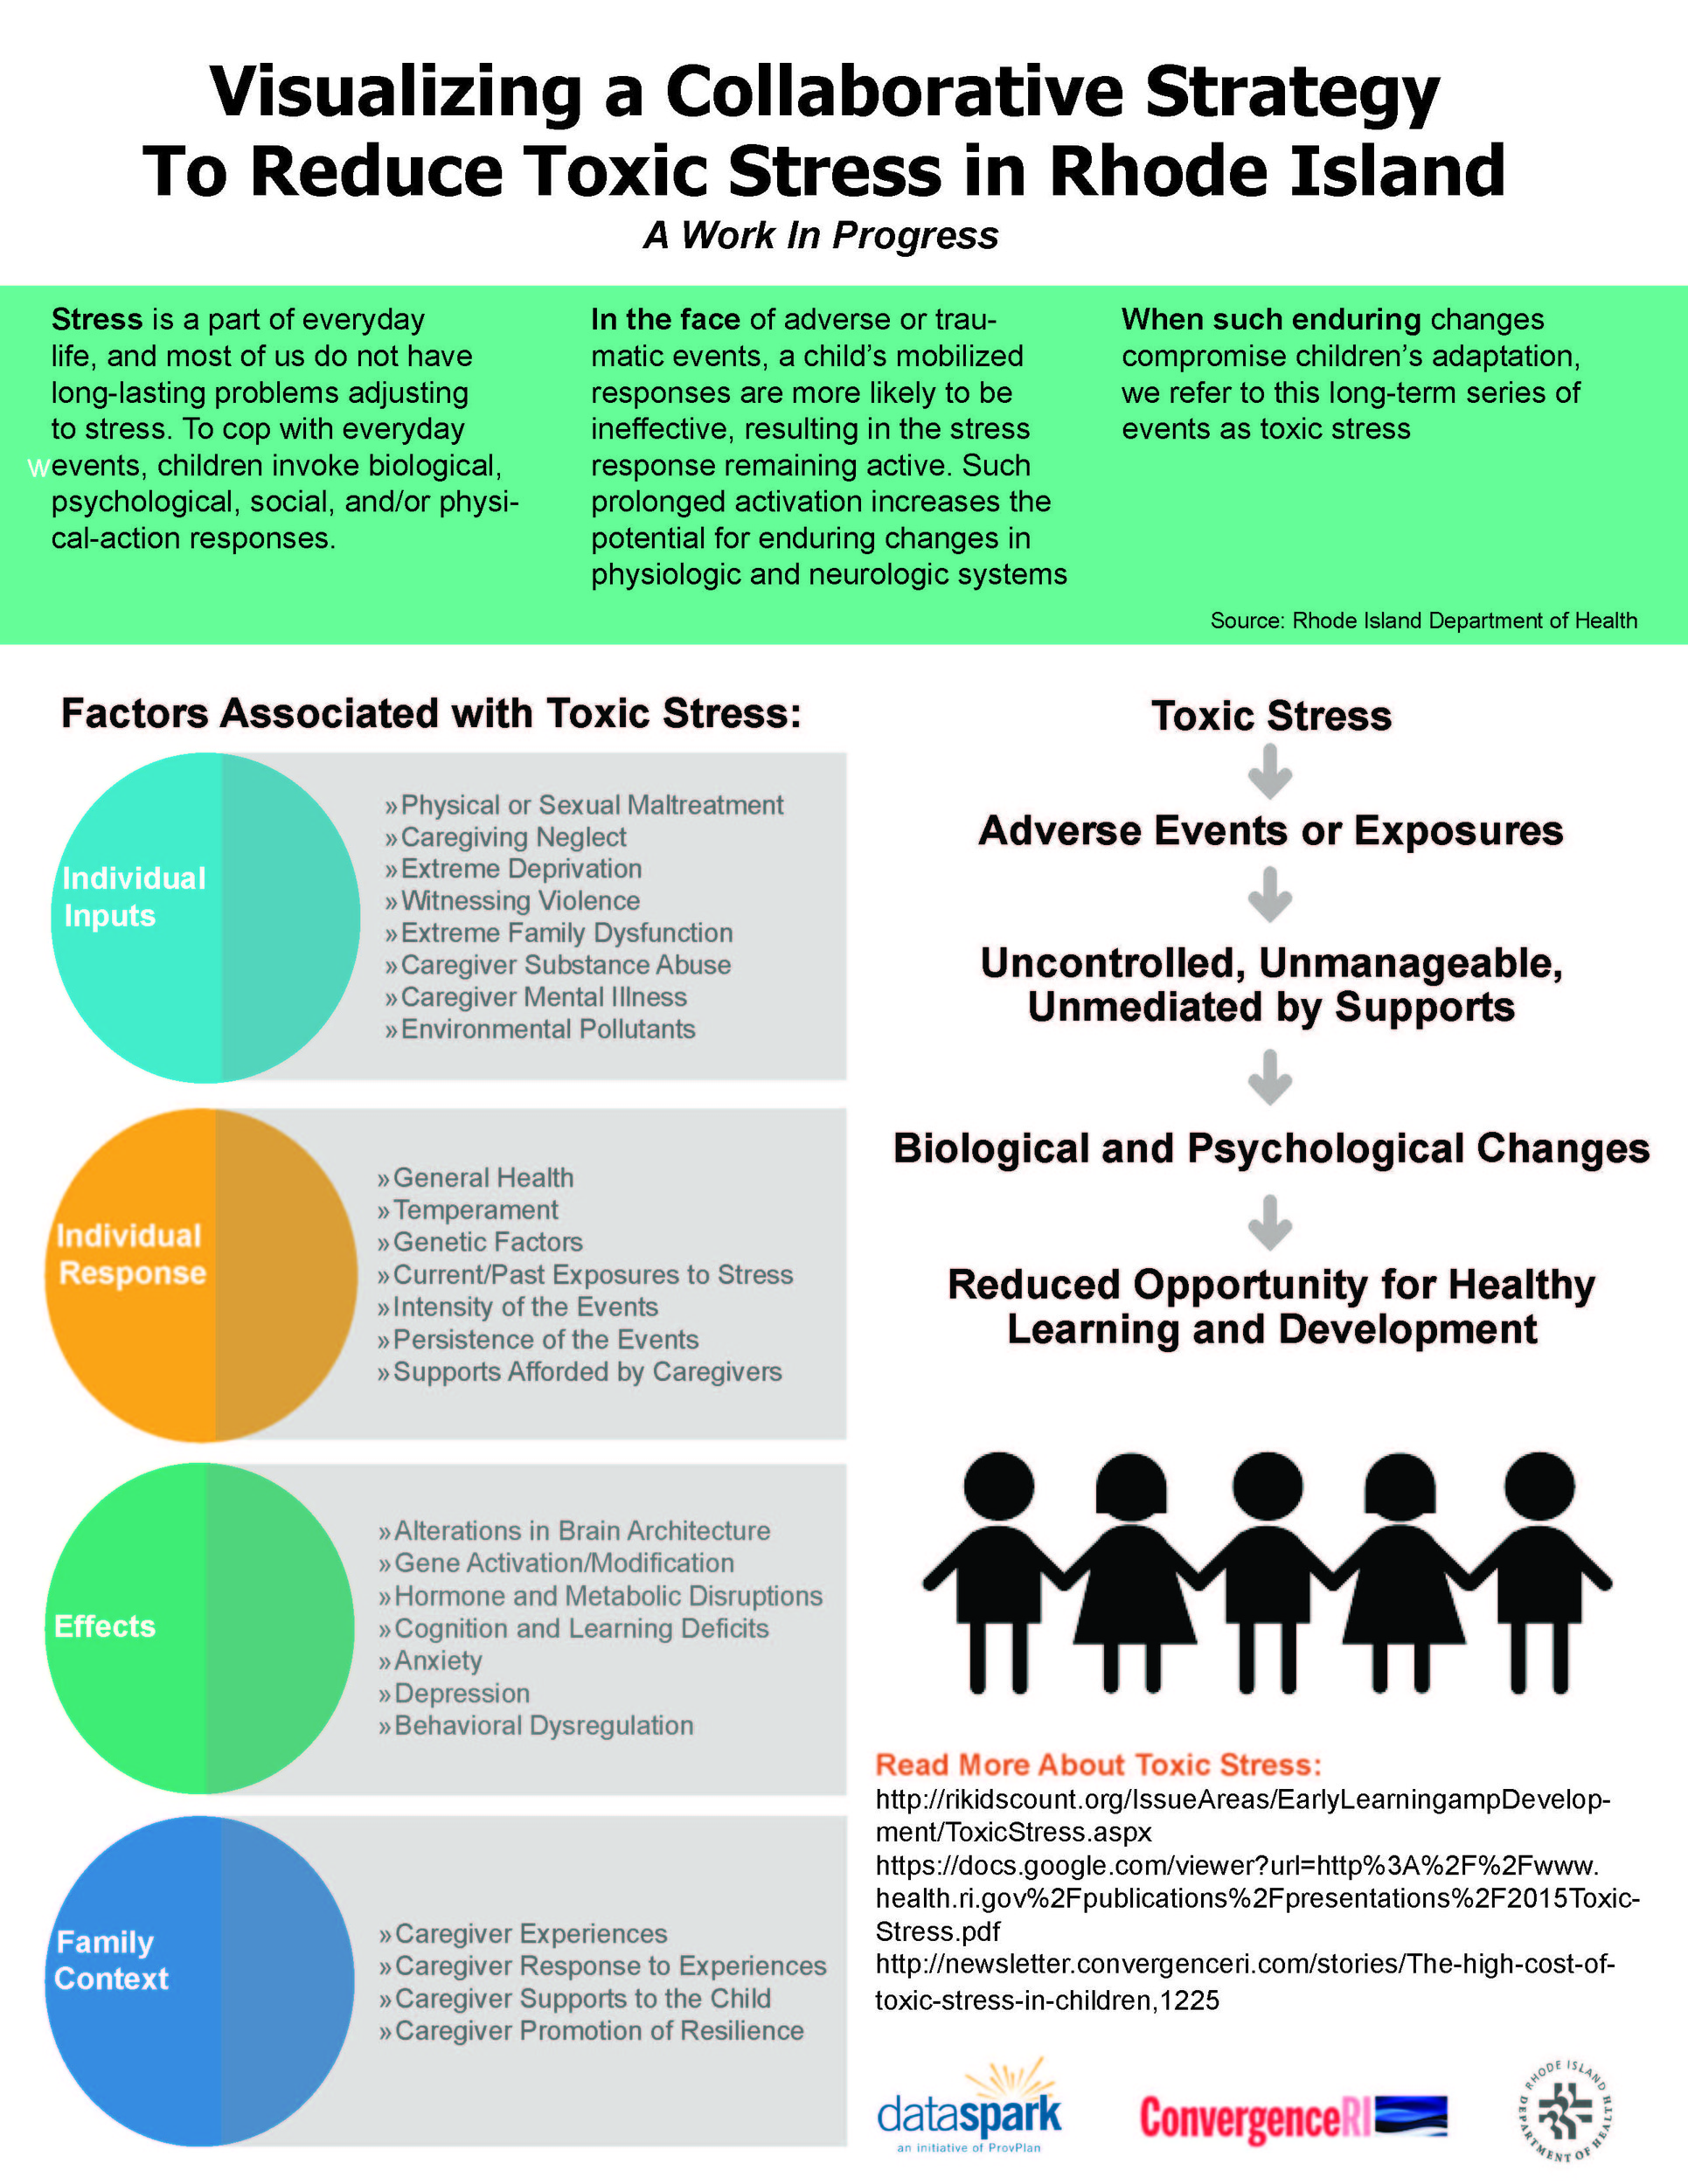 A Guide To Toxic Stress And Its Effects >> Making The Efforts To Reduce Toxic Stress More Visible Convergenceri